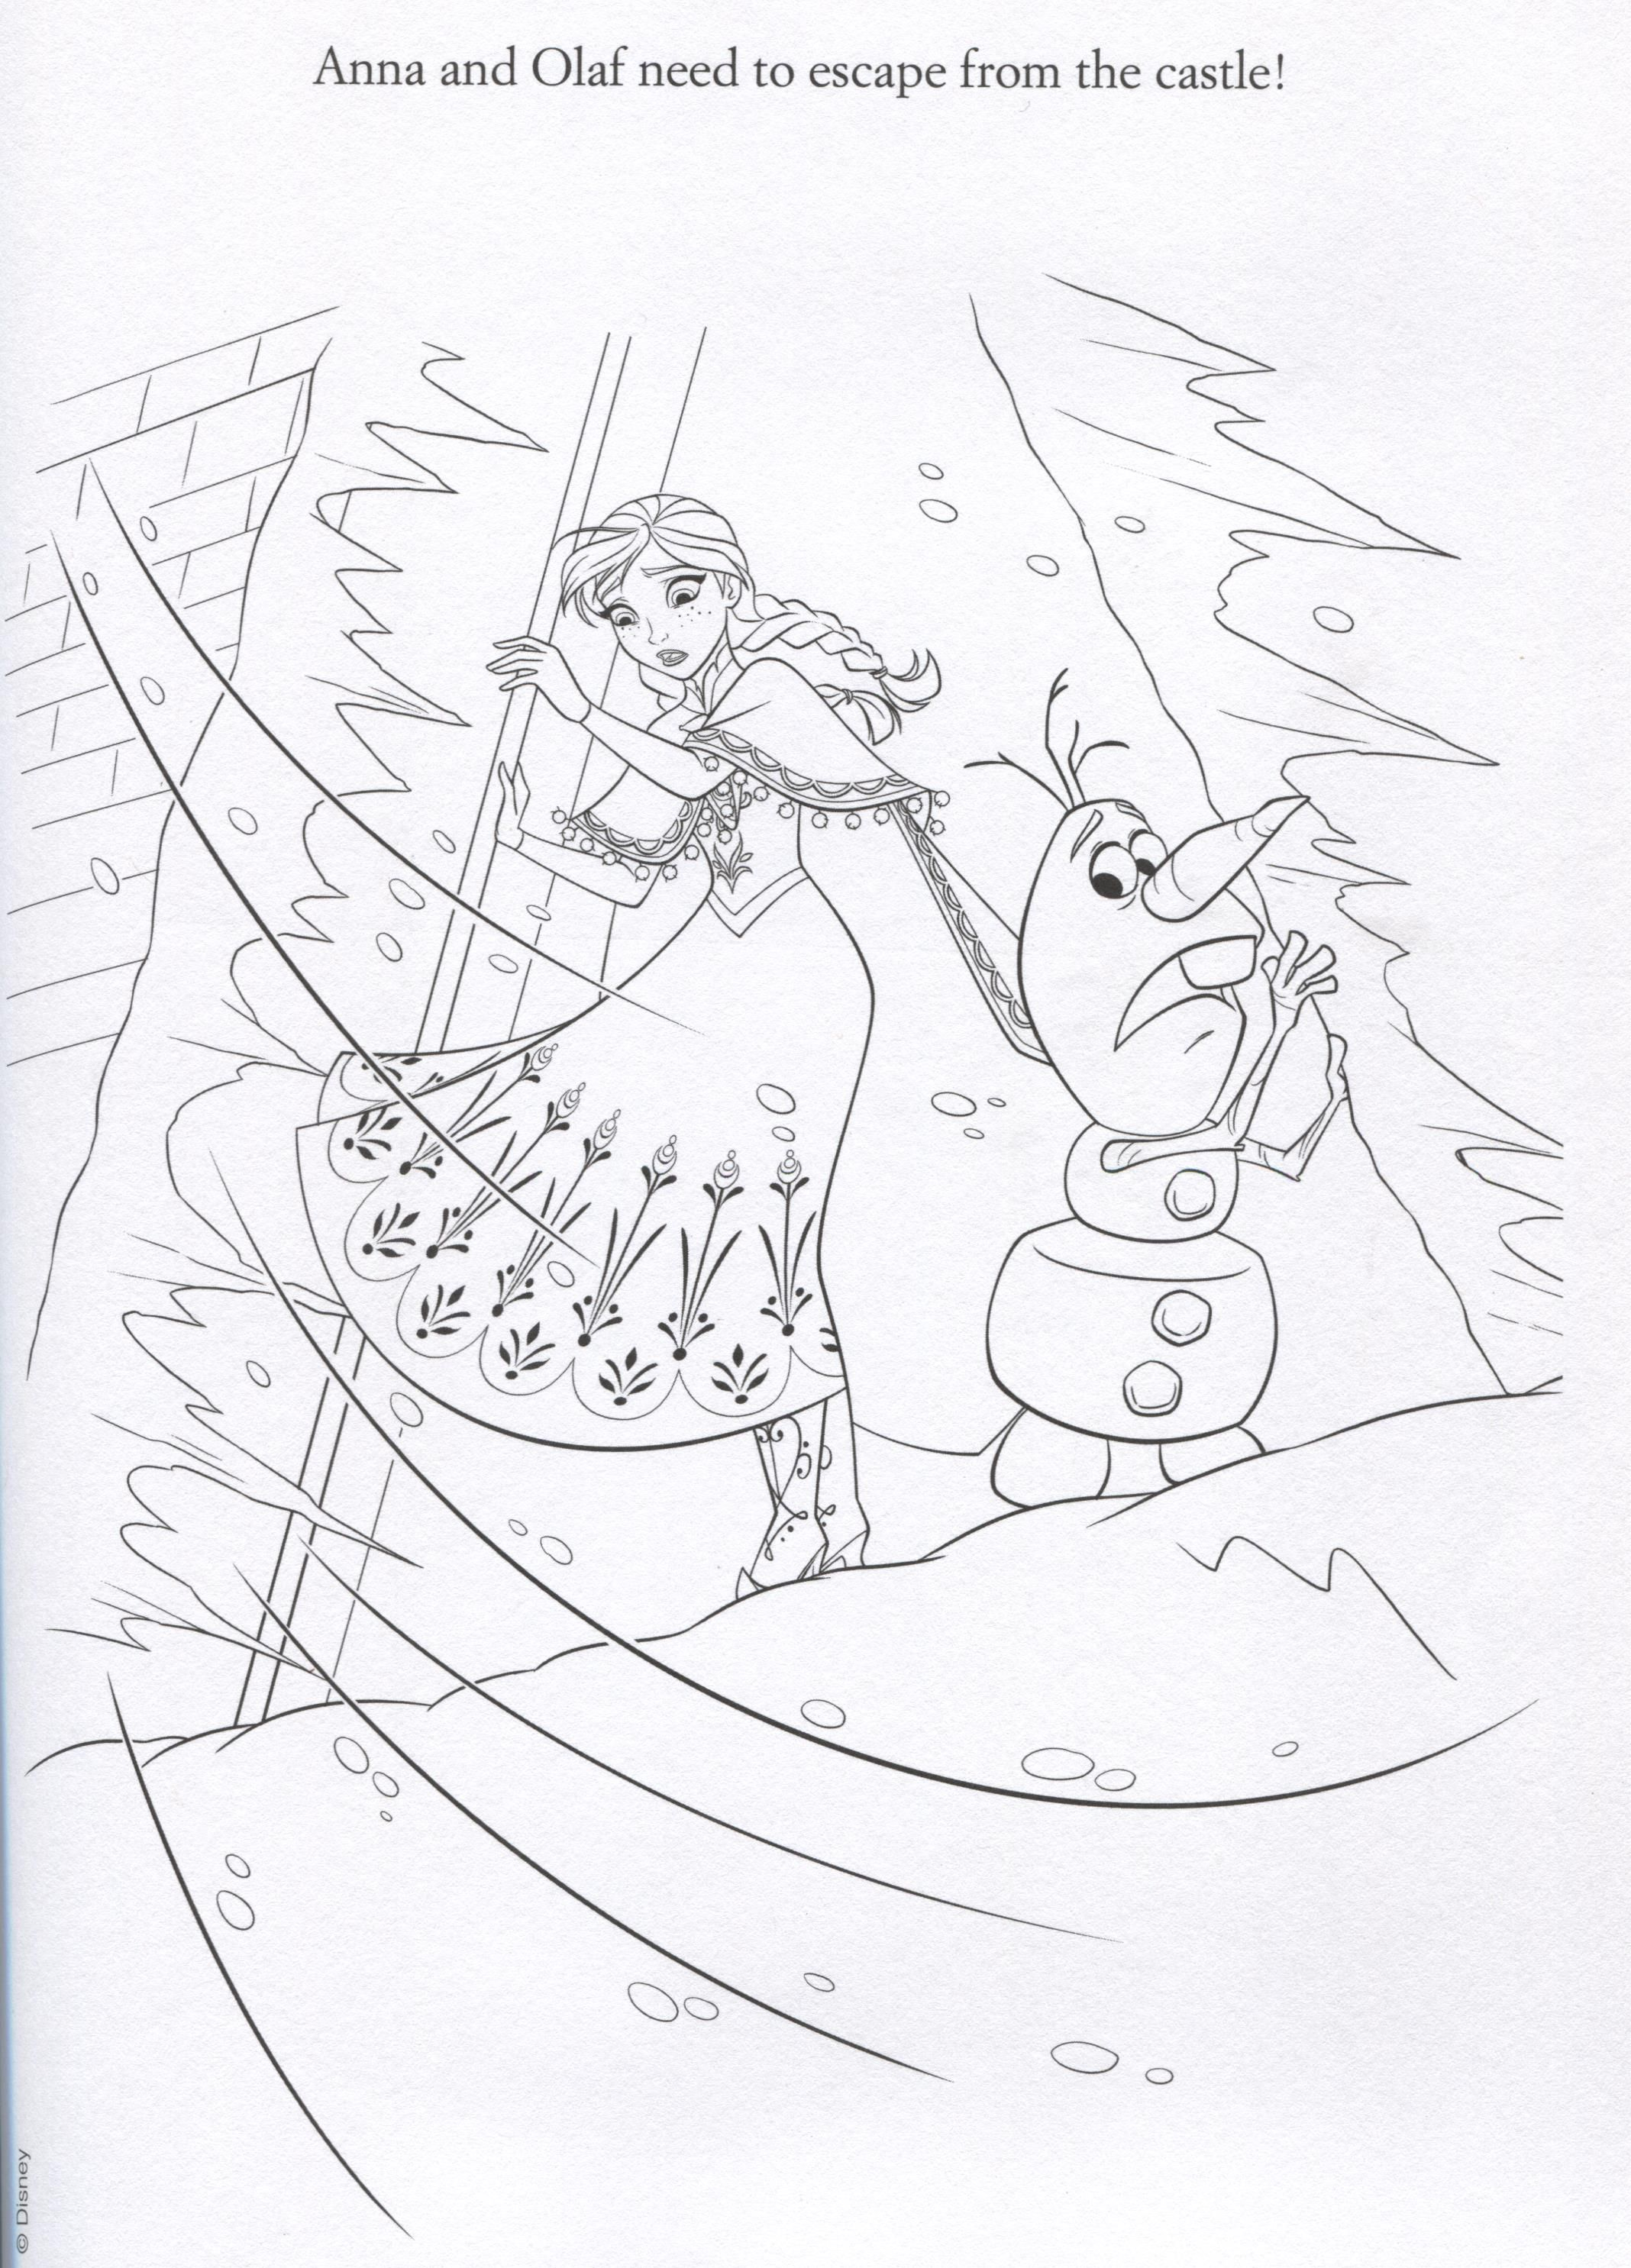 Frozen coloring pages and activities - Disney Frozen Coloring Sheets Official Frozen Illustrations Coloring Pages Frozen Photo